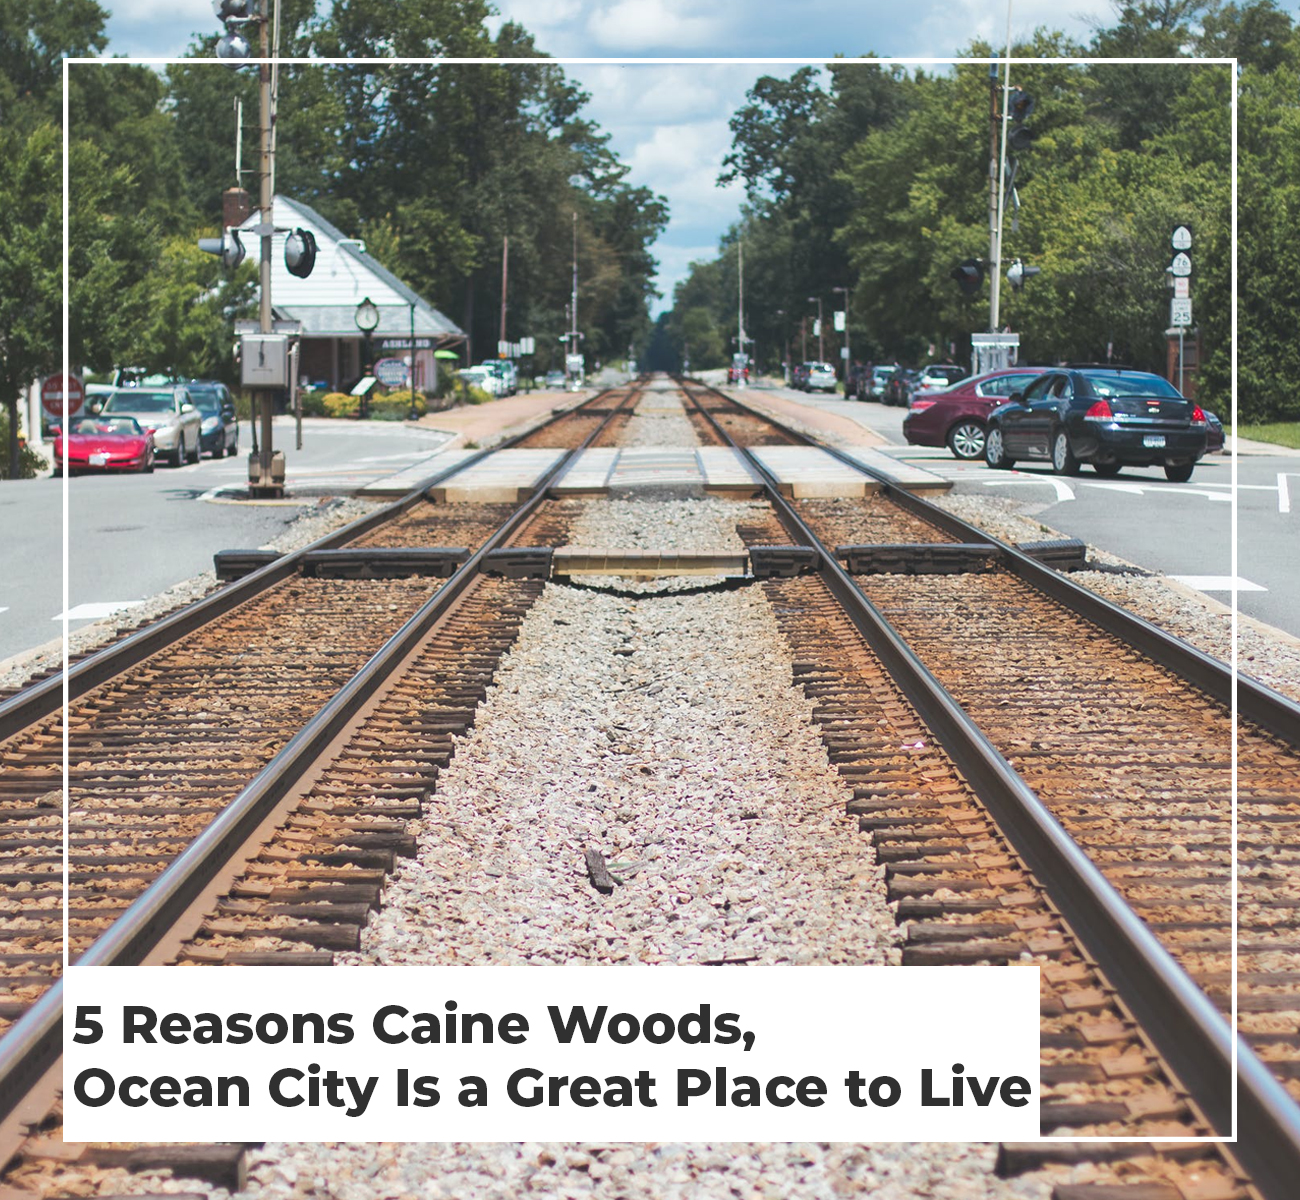 5 Reasons Caine Woods is a Great Place to Live